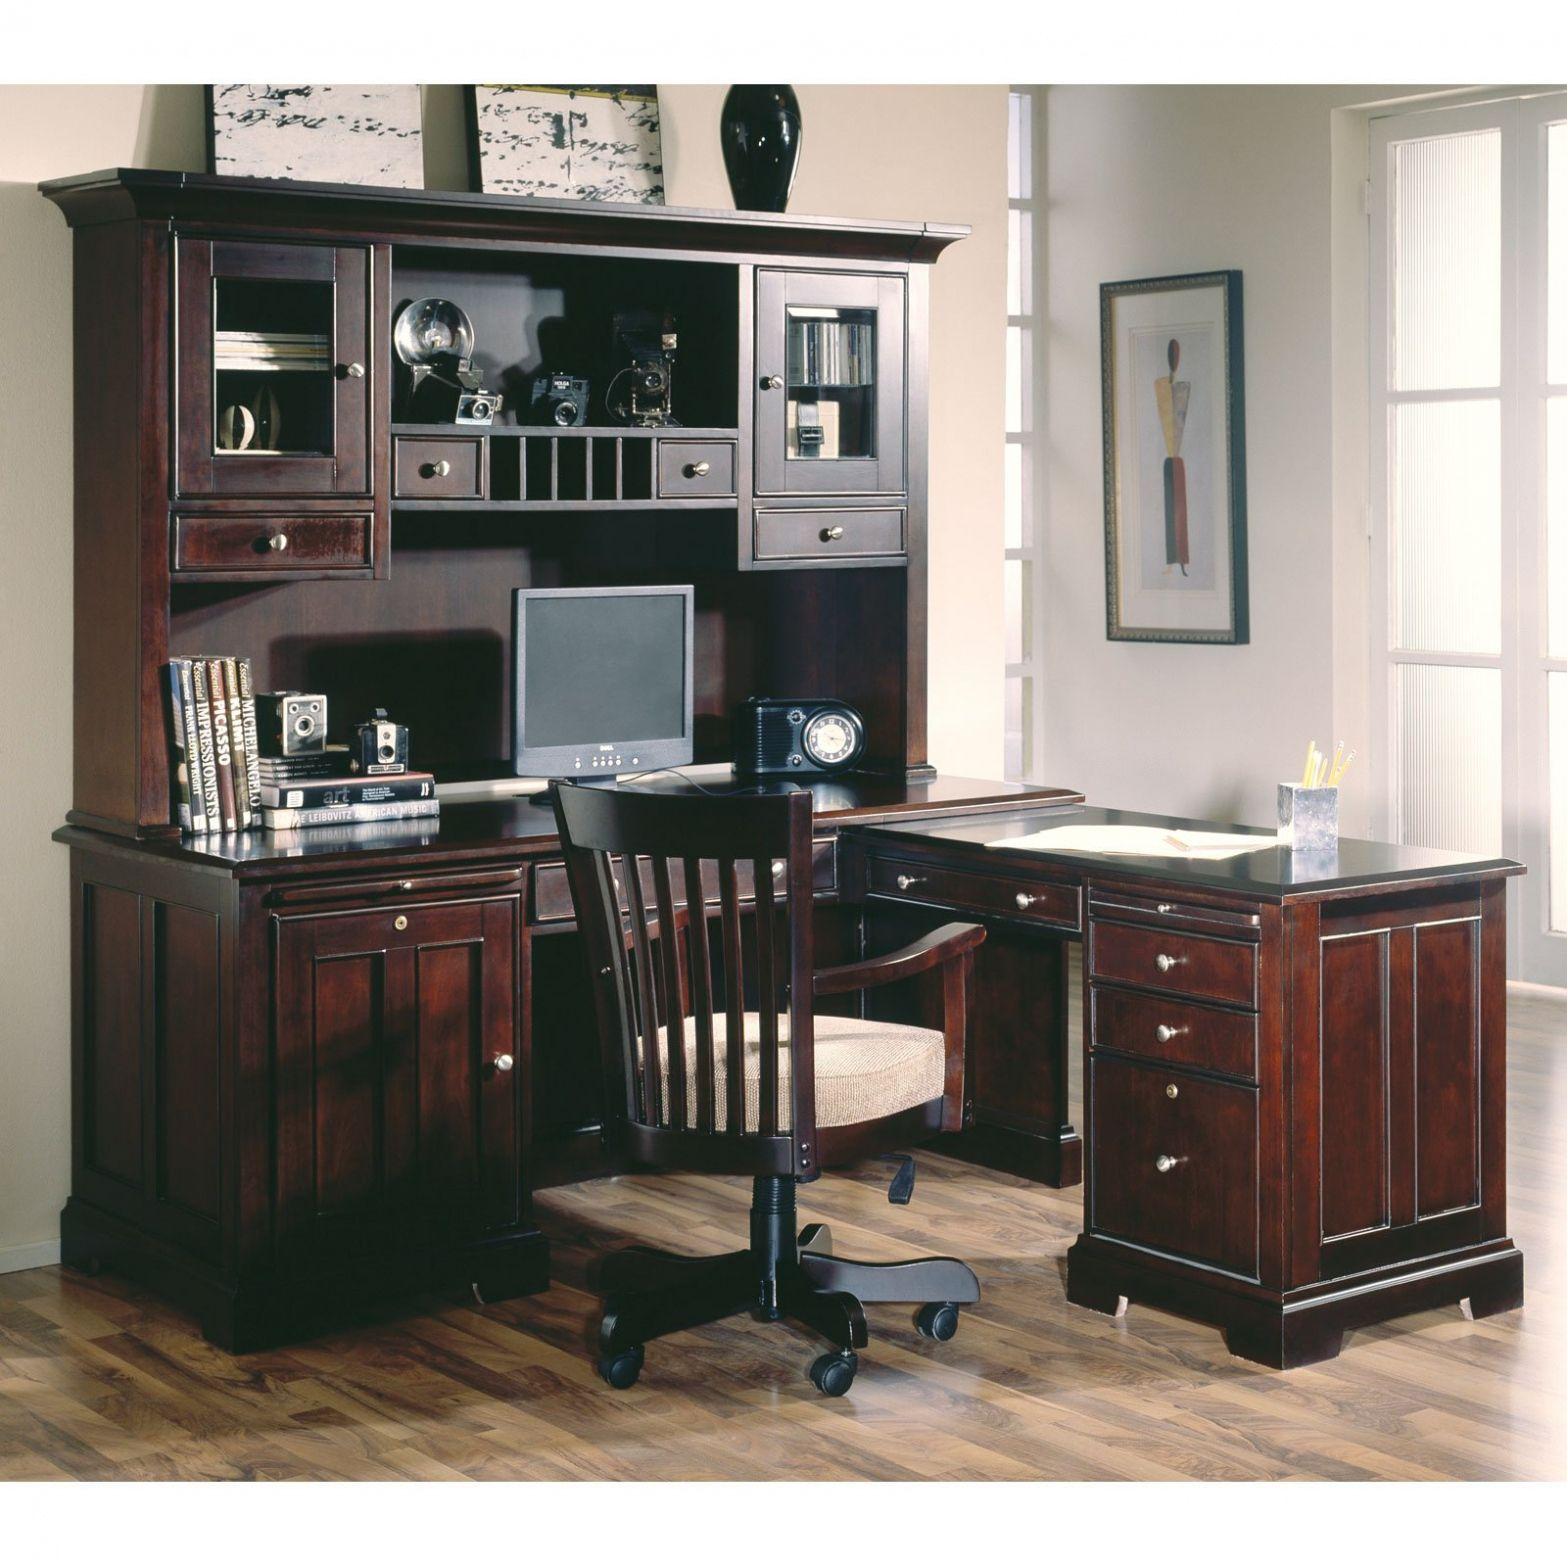 coaster shape home office computer desk. 2018 Office Furniture With Hutch - Used Home Check More At Http:/ Coaster Shape Computer Desk